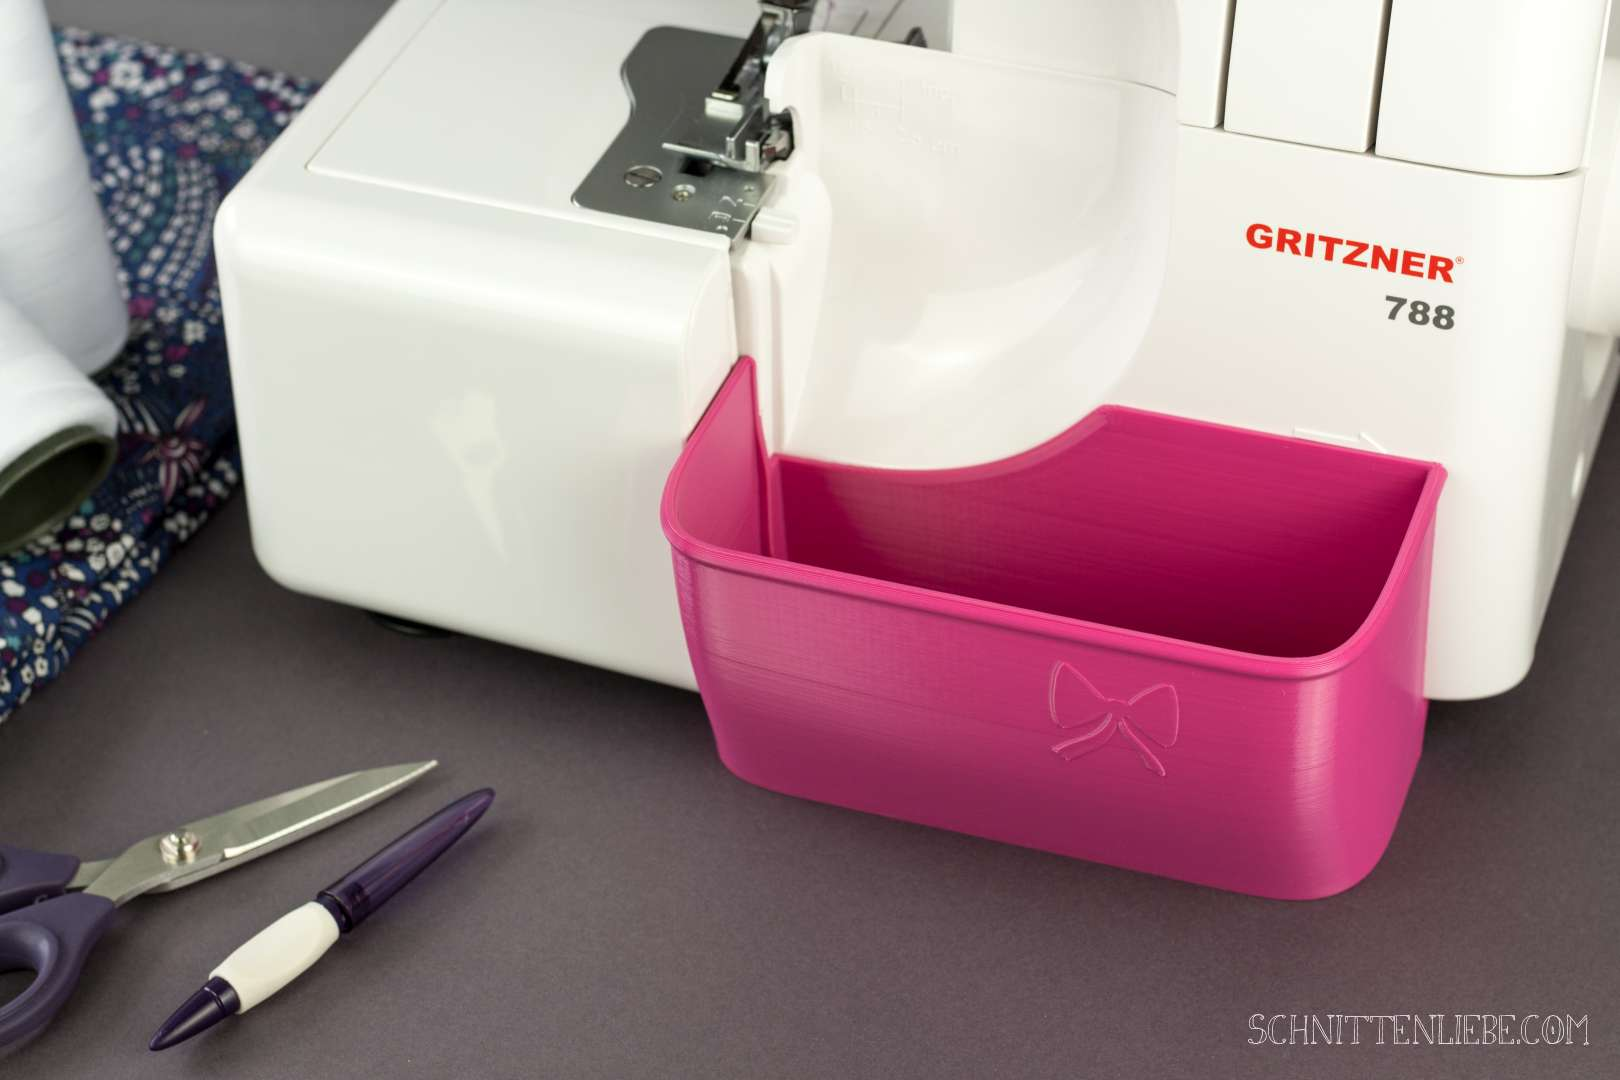 Schnittenliebe 3D collecting container Gritzner 788 pink